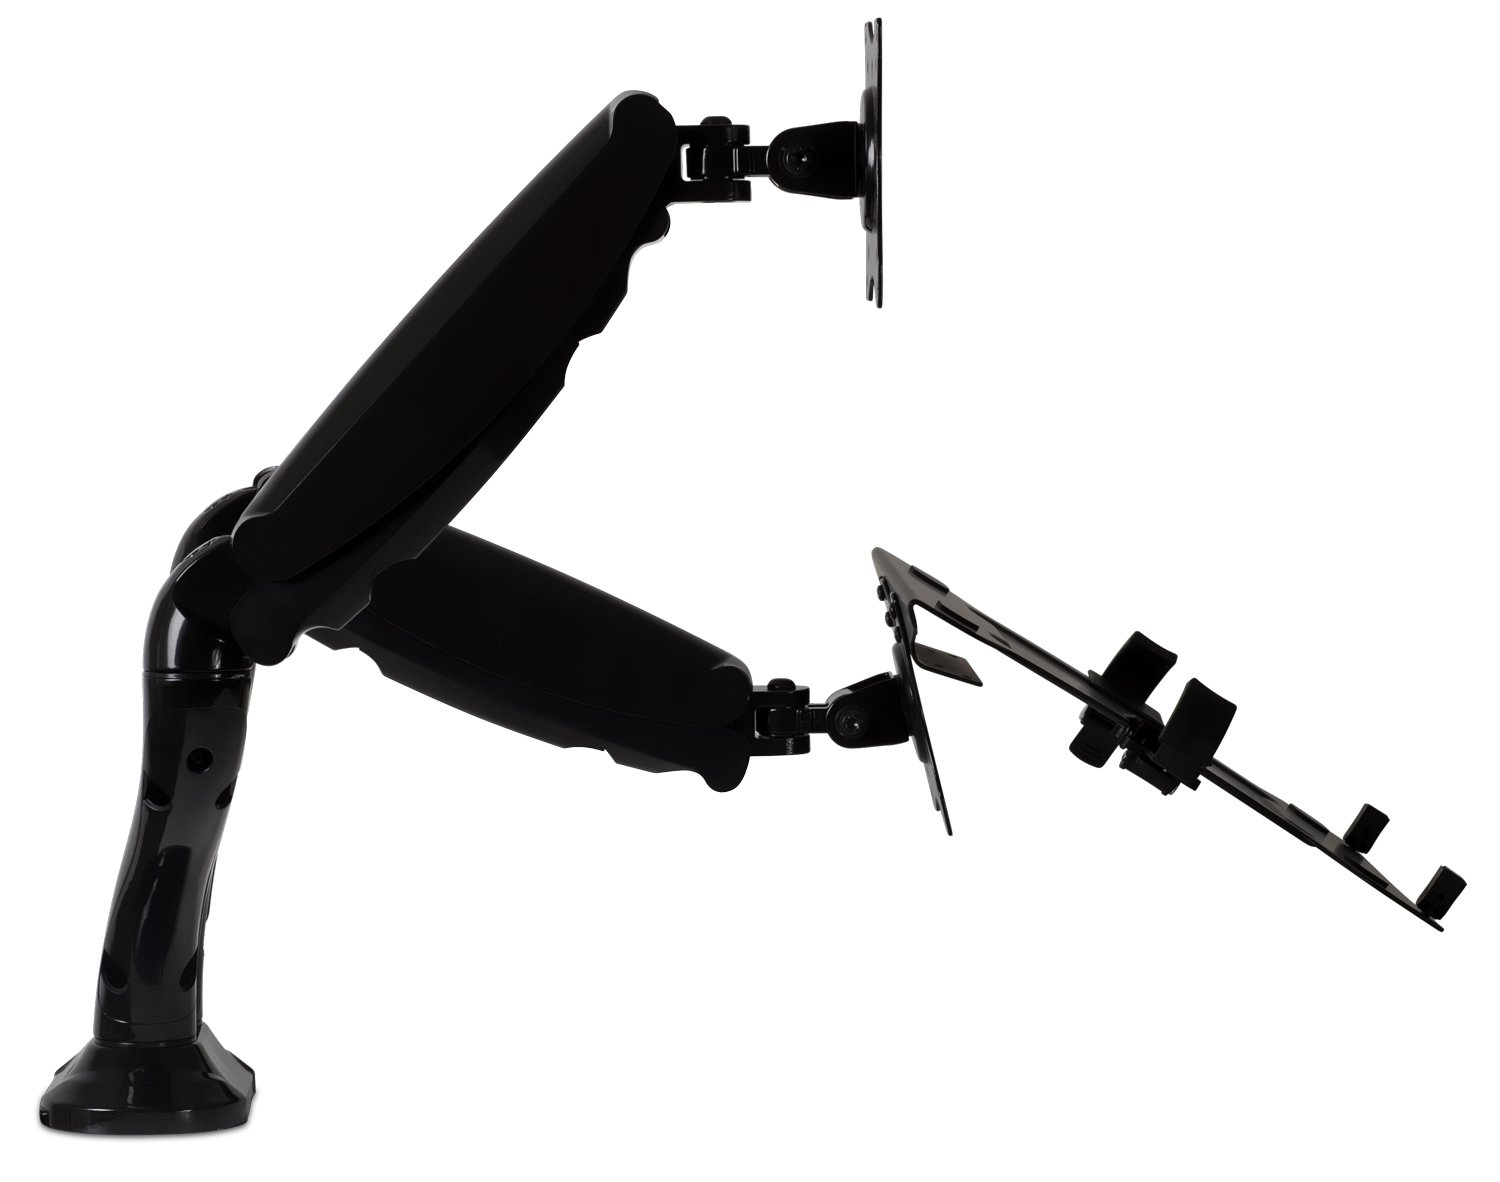 Mount-It! Laptop Desk Stand and Monitor Mount, Full Motion Monitor and Laptop Arm, Fits up to 15.6 Inch Notebooks, VESA 75, 100 Compatible with 22, 23, 24, 27, 32 inch Screens, 13.2 Lbs Per Arm by Mount-It! (Image #5)